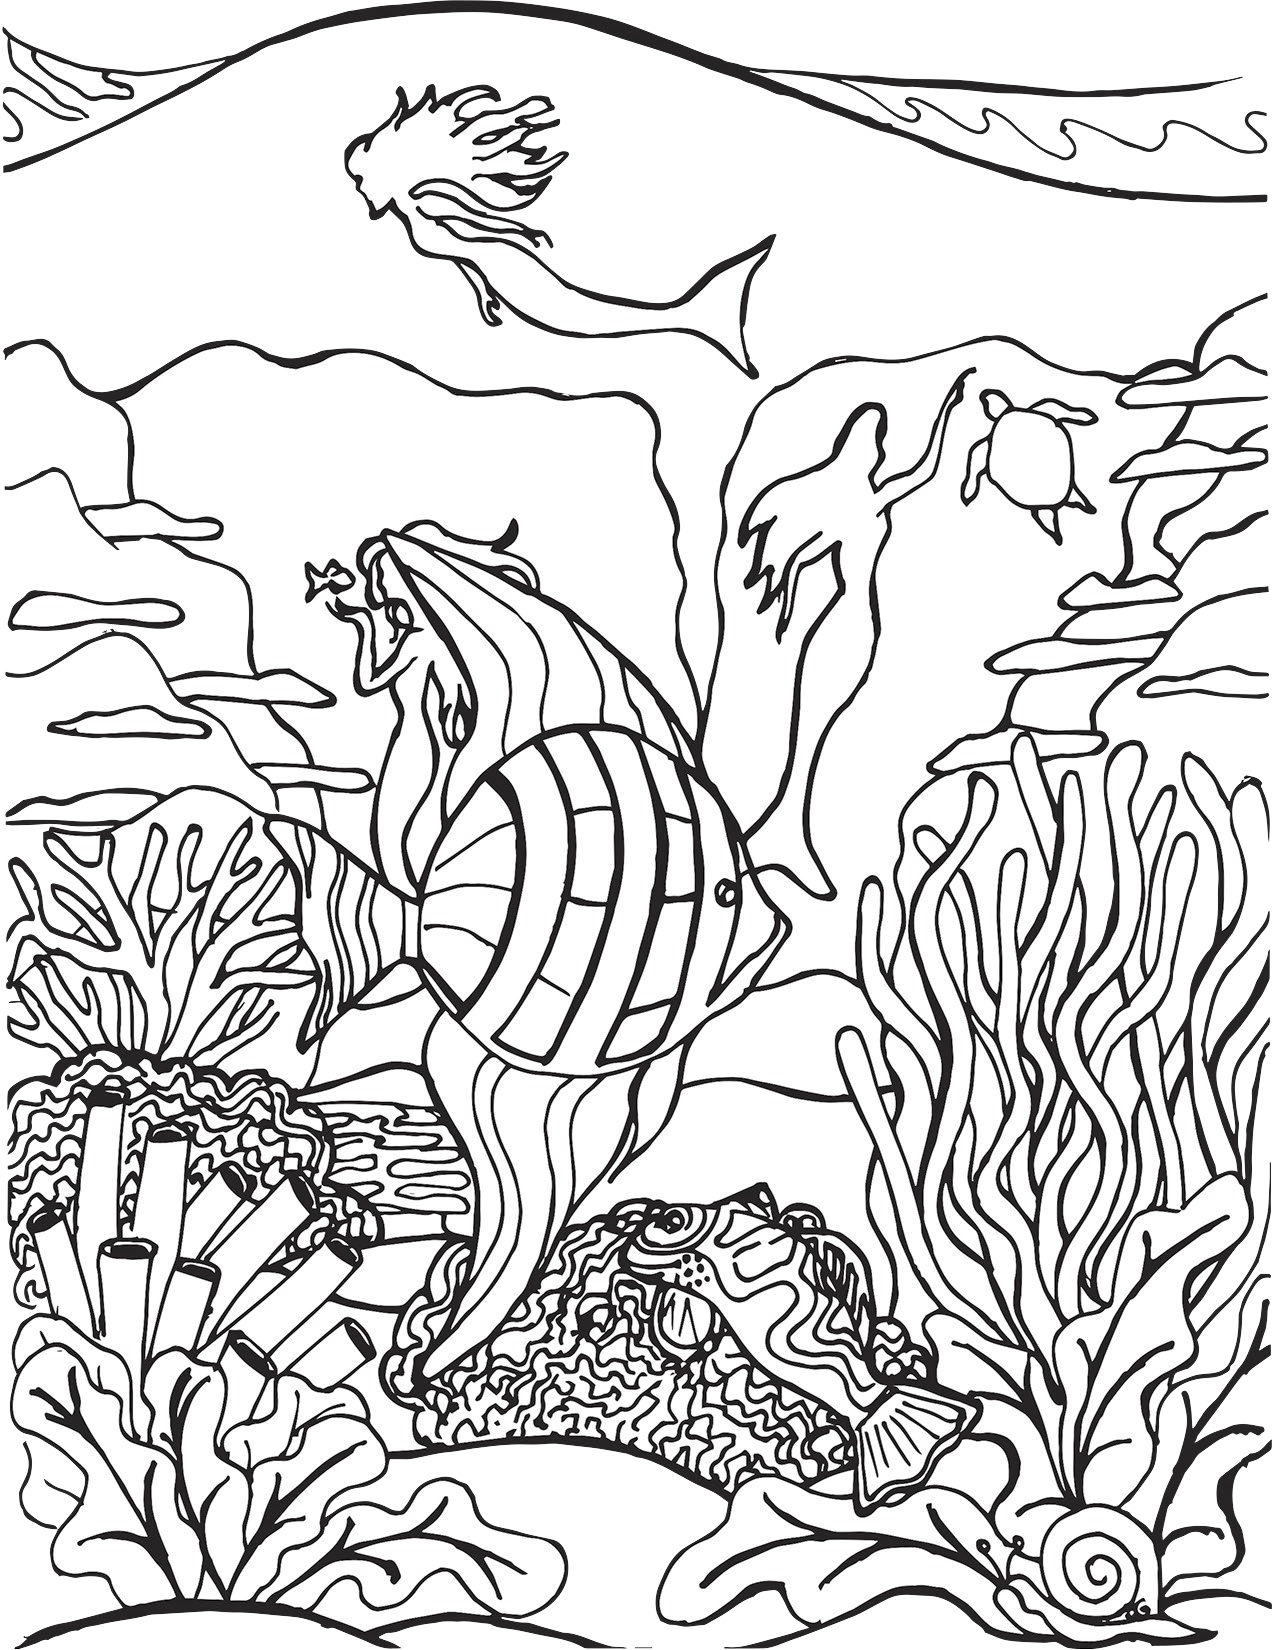 Tropical Fish and Mermaid Silhouettes Coloring Page